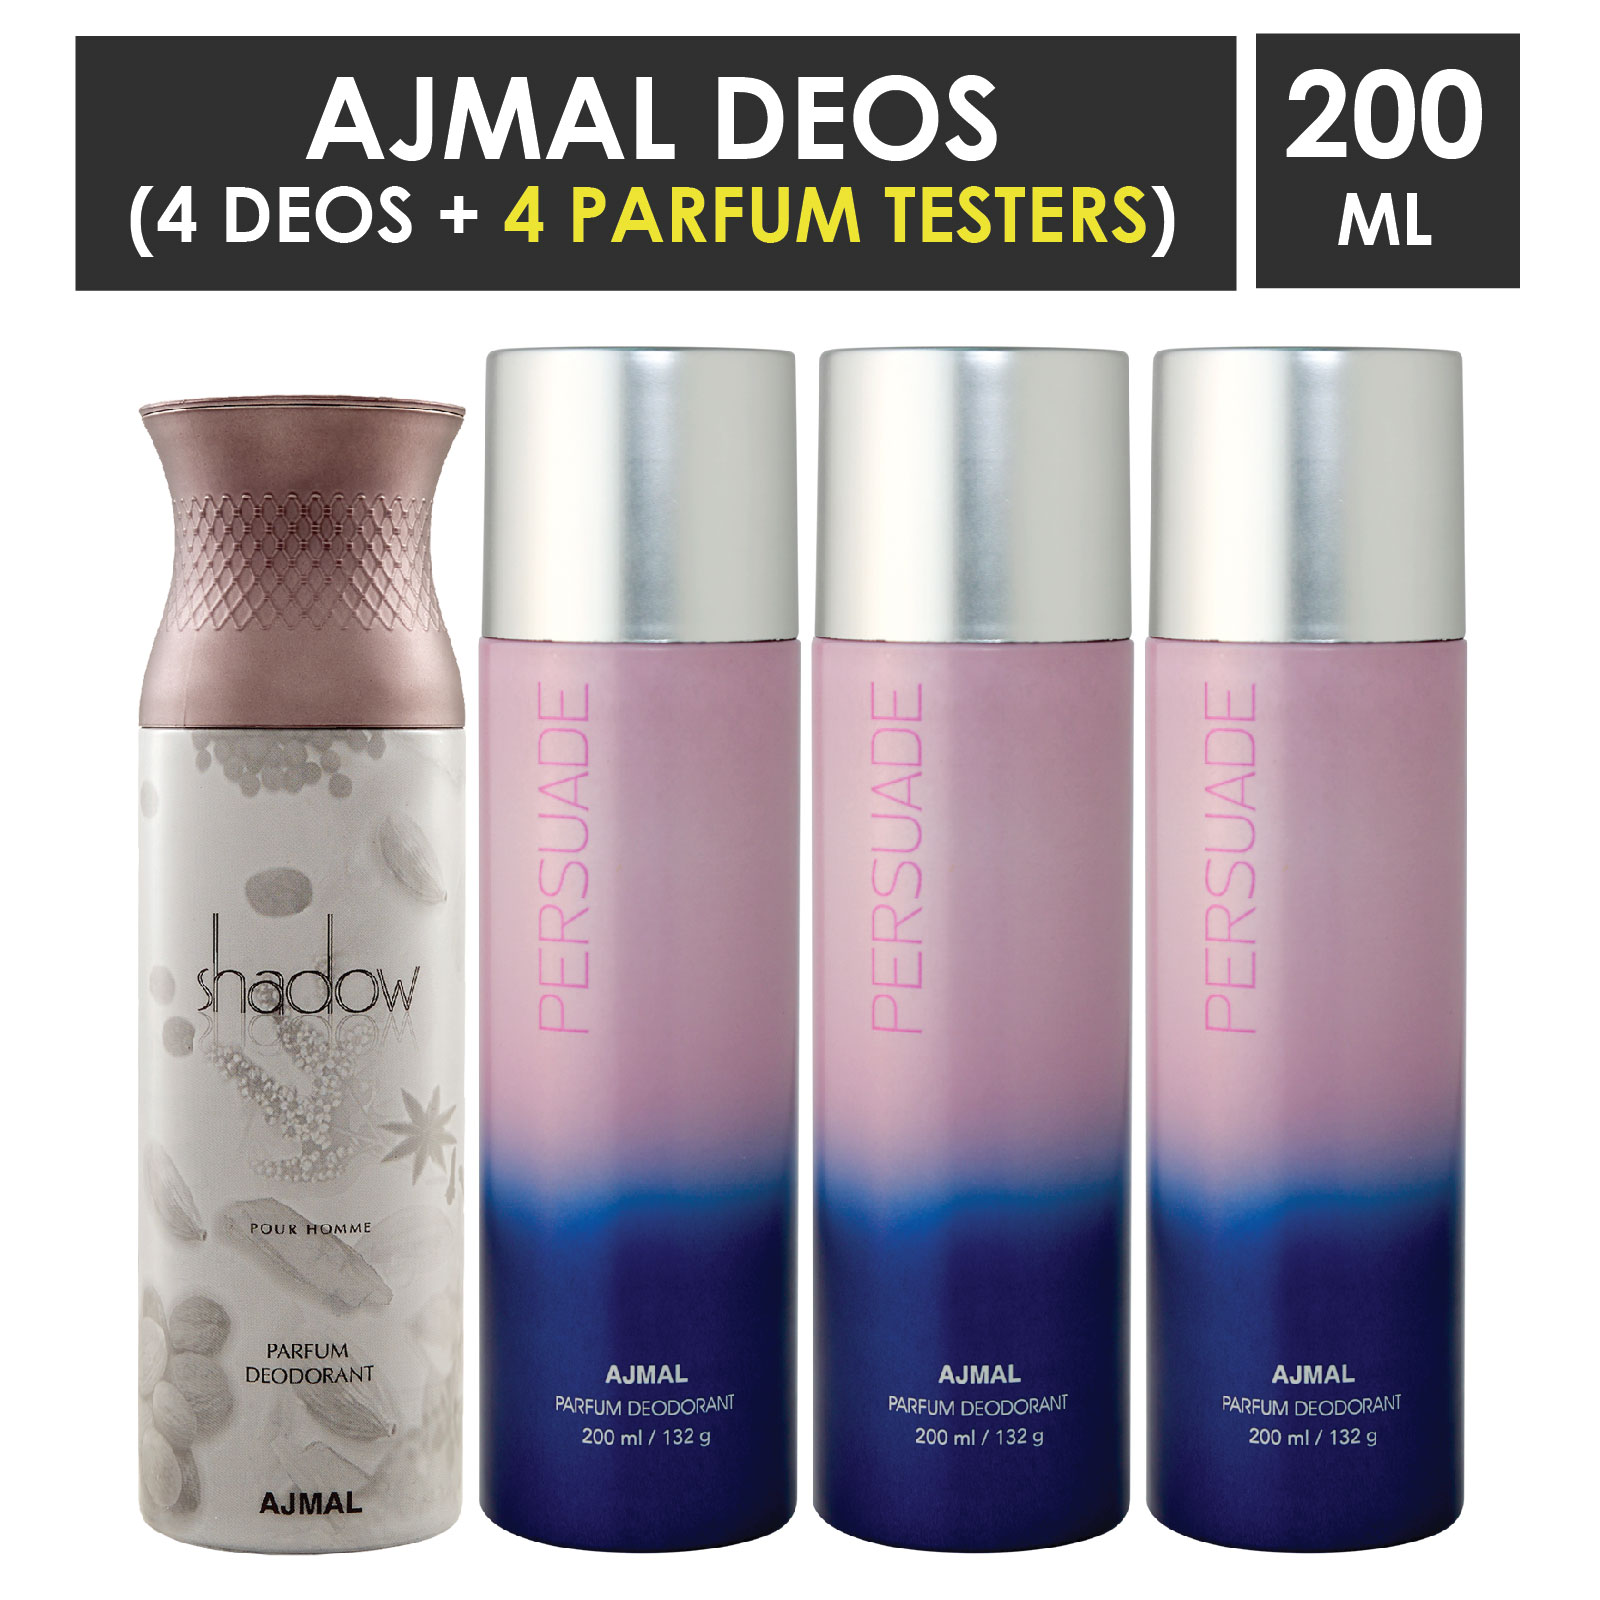 Ajmal | Ajmal 1 Shadow Him for Men and 3 Persuade for Men & Women High Quality Deodorants each 200ML Combo pack of 4 (Total 800ML) + 4 Parfum Testers